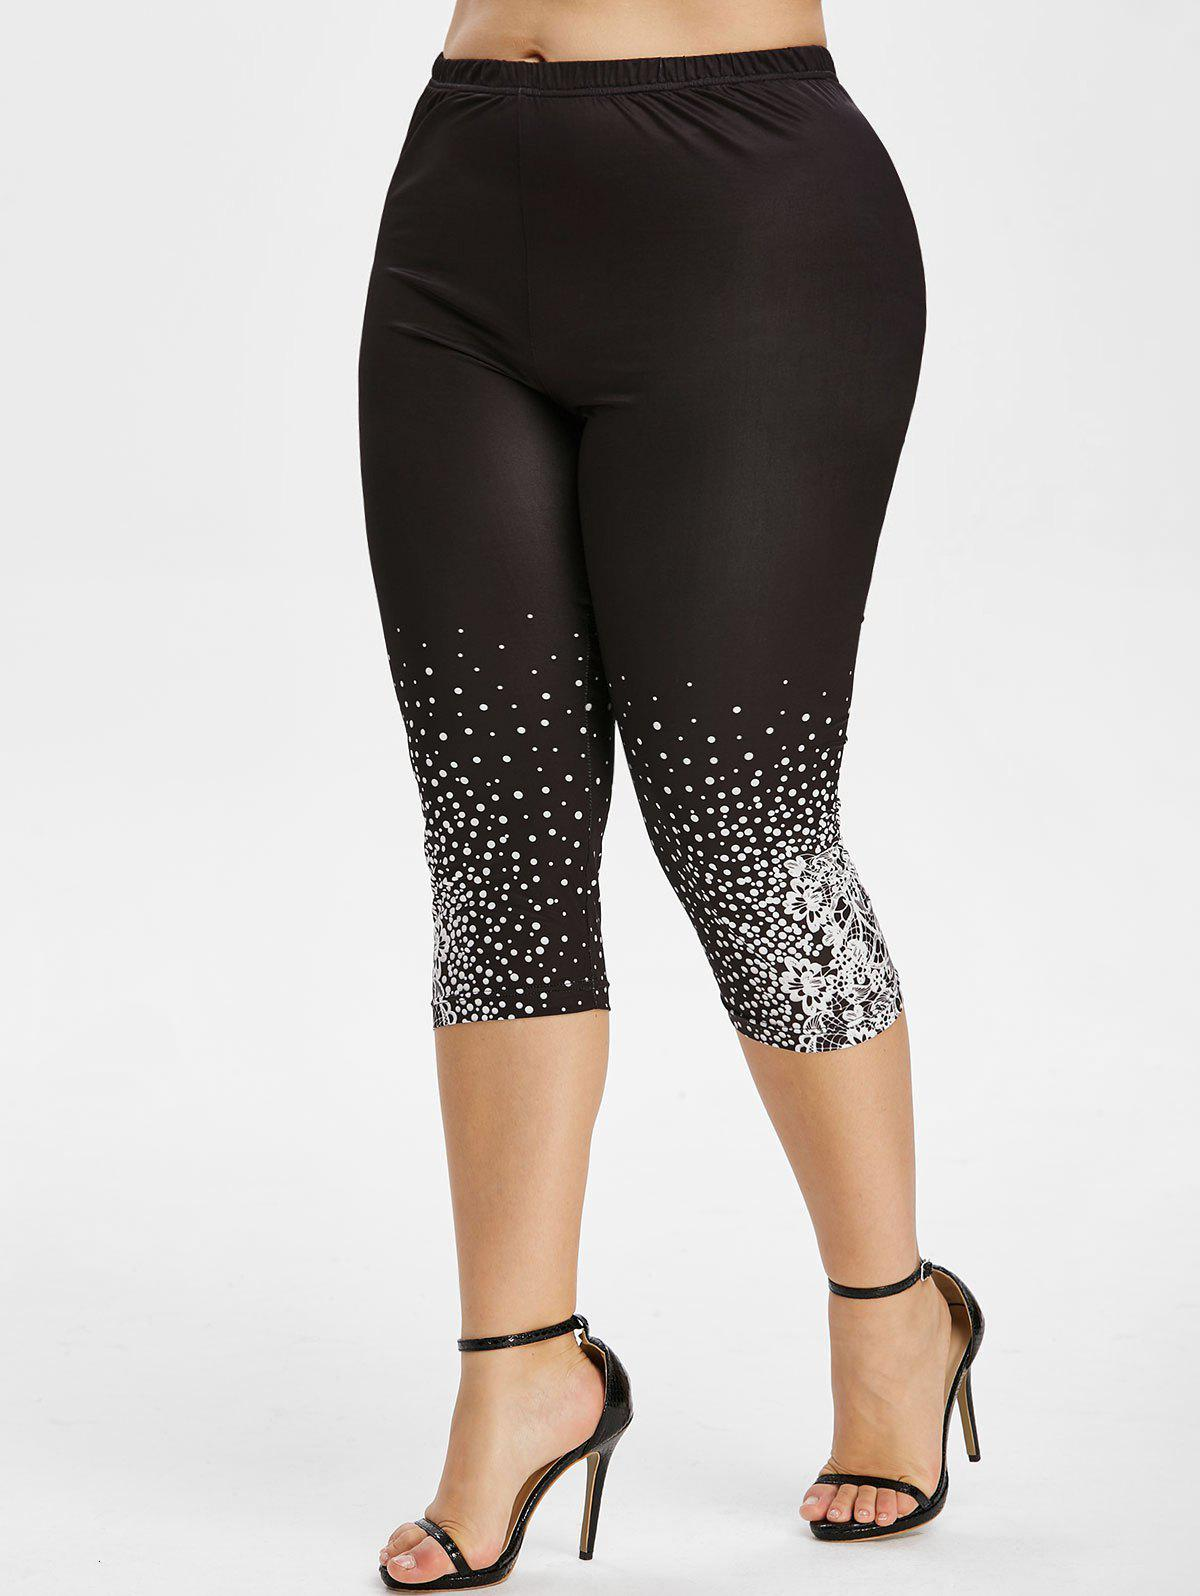 Floral Dots High Waisted Plus Size Capri Leggings - BLACK 4X